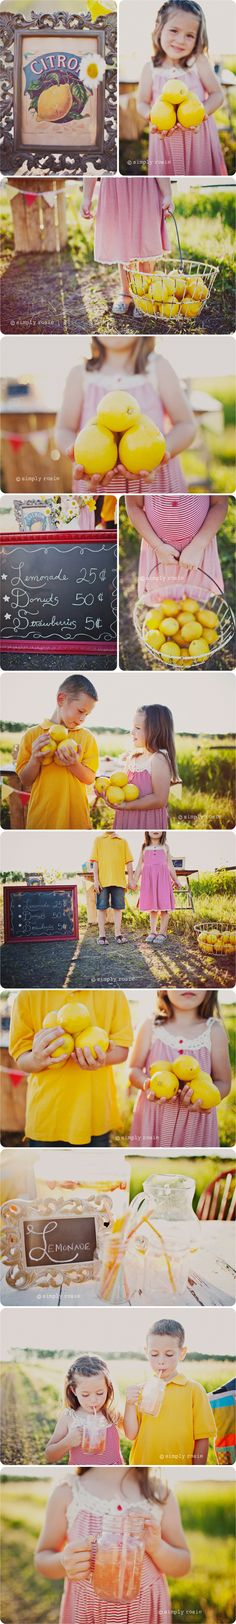 Cute summer photo shoot. I love the use of lemons and the country feel. @Savanna Warick louise